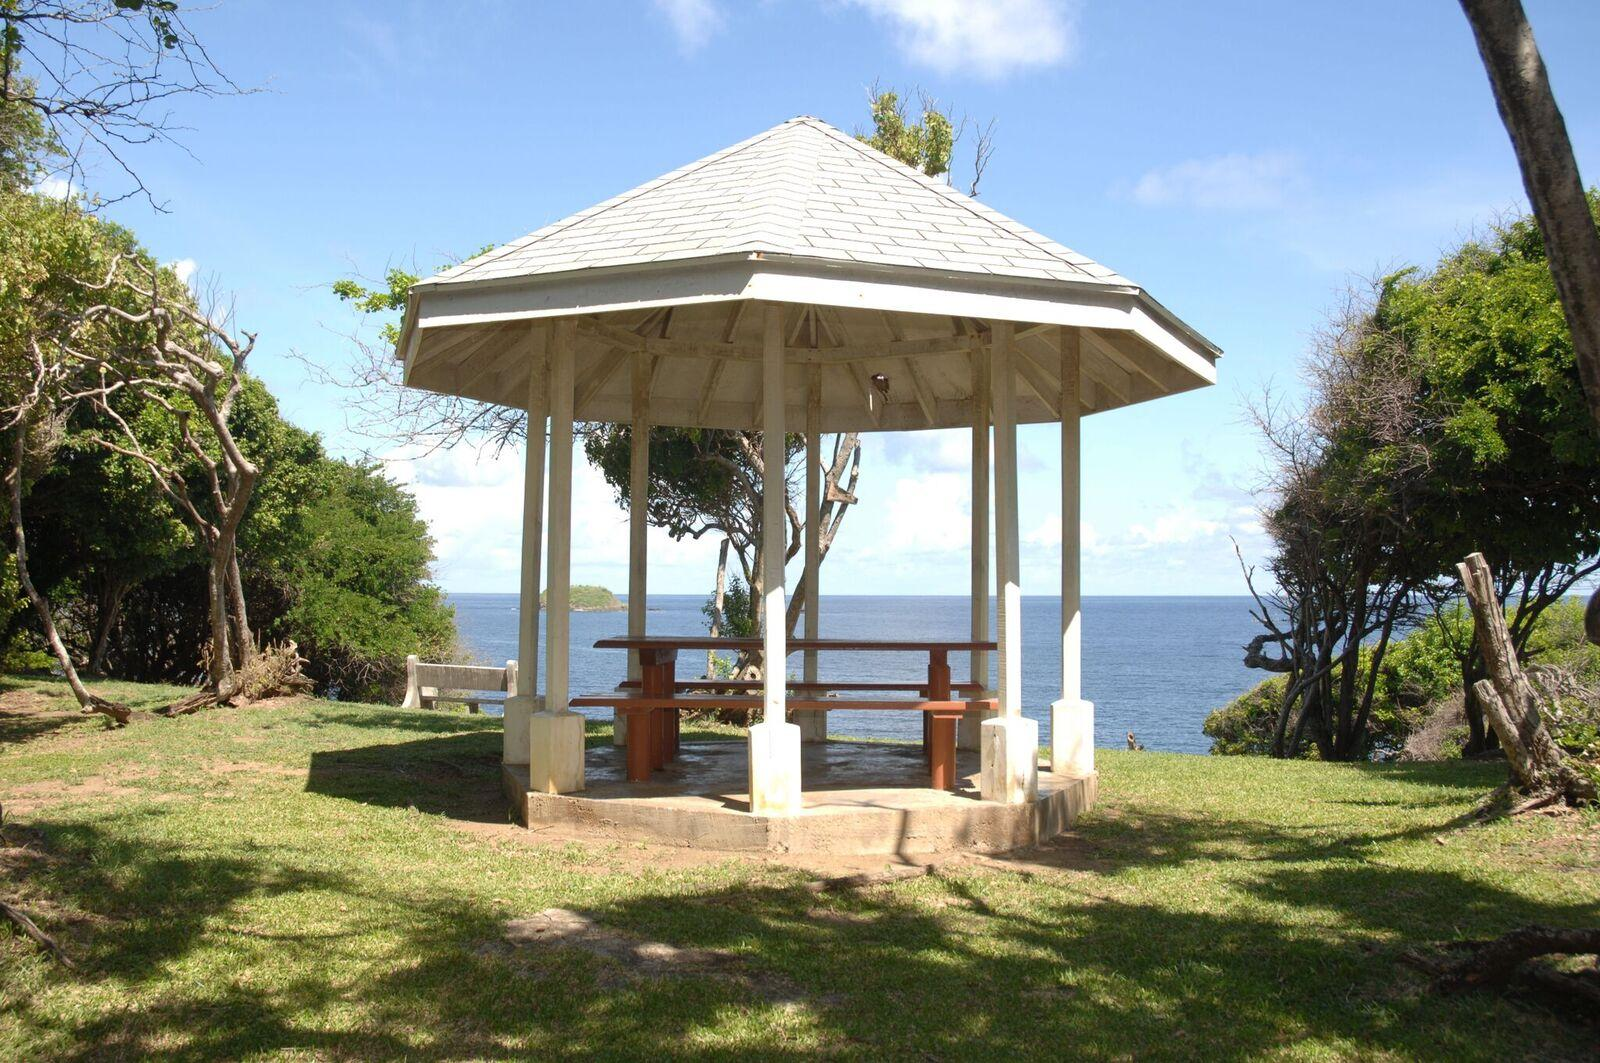 Gazebo at Fort Granby